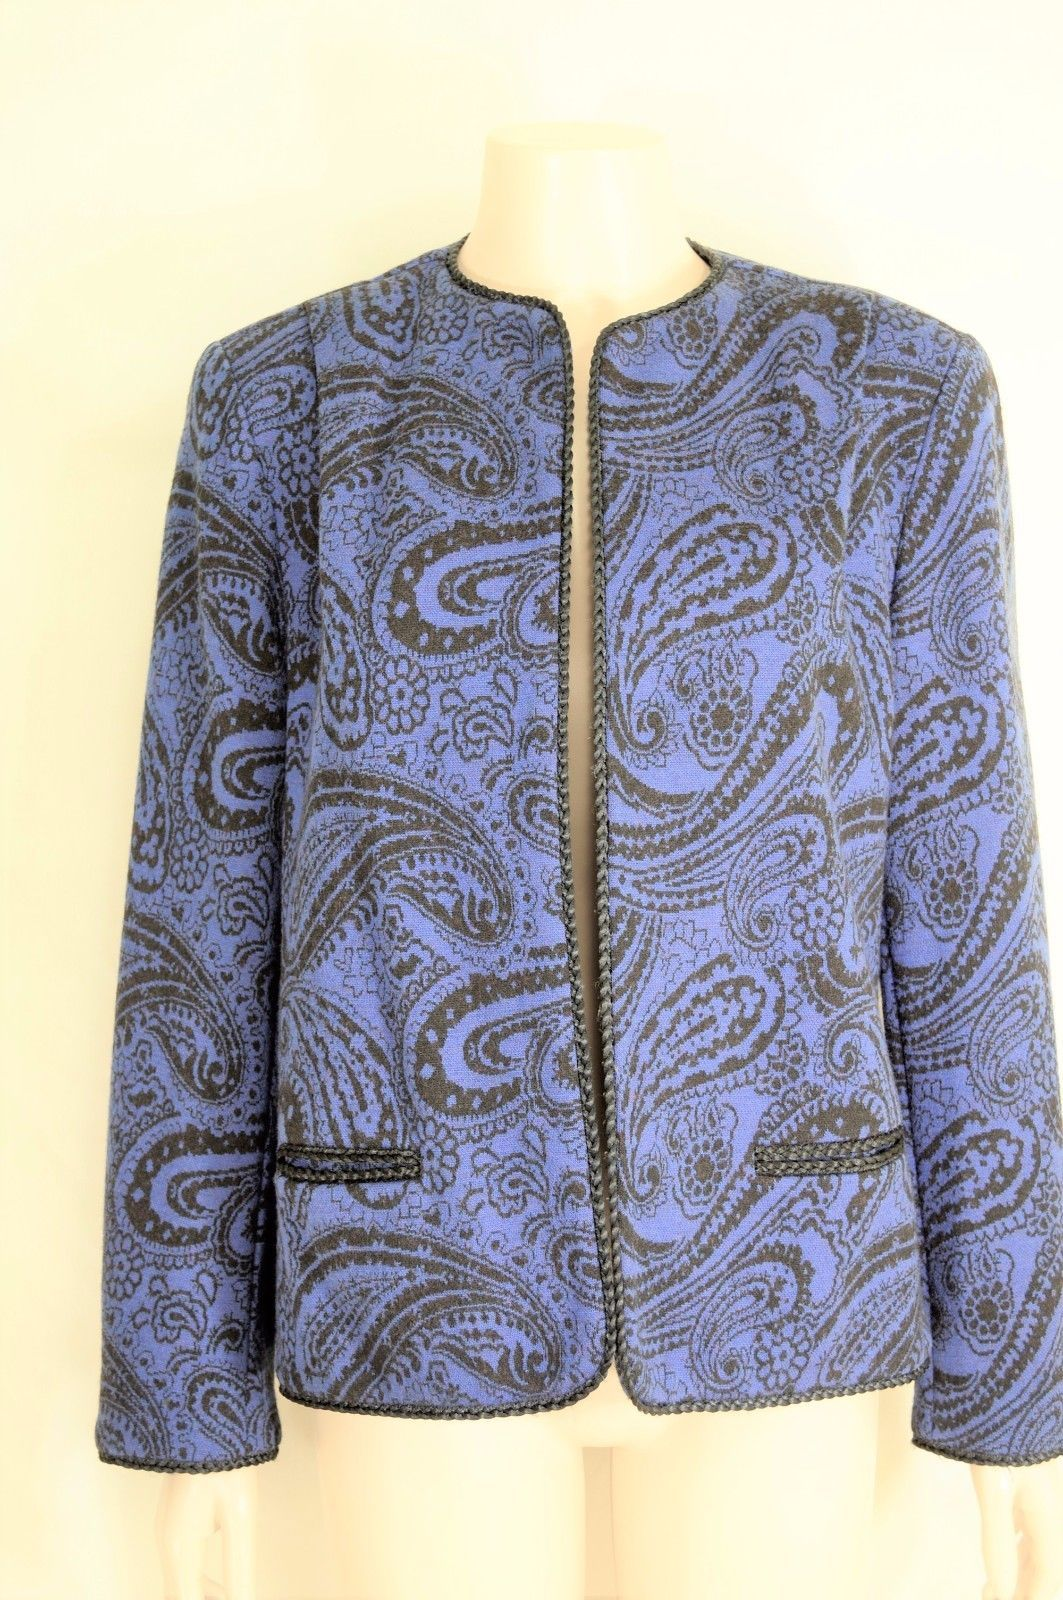 Bleyle jacket vintage M? wool blue black paisley print cropped career lined USA